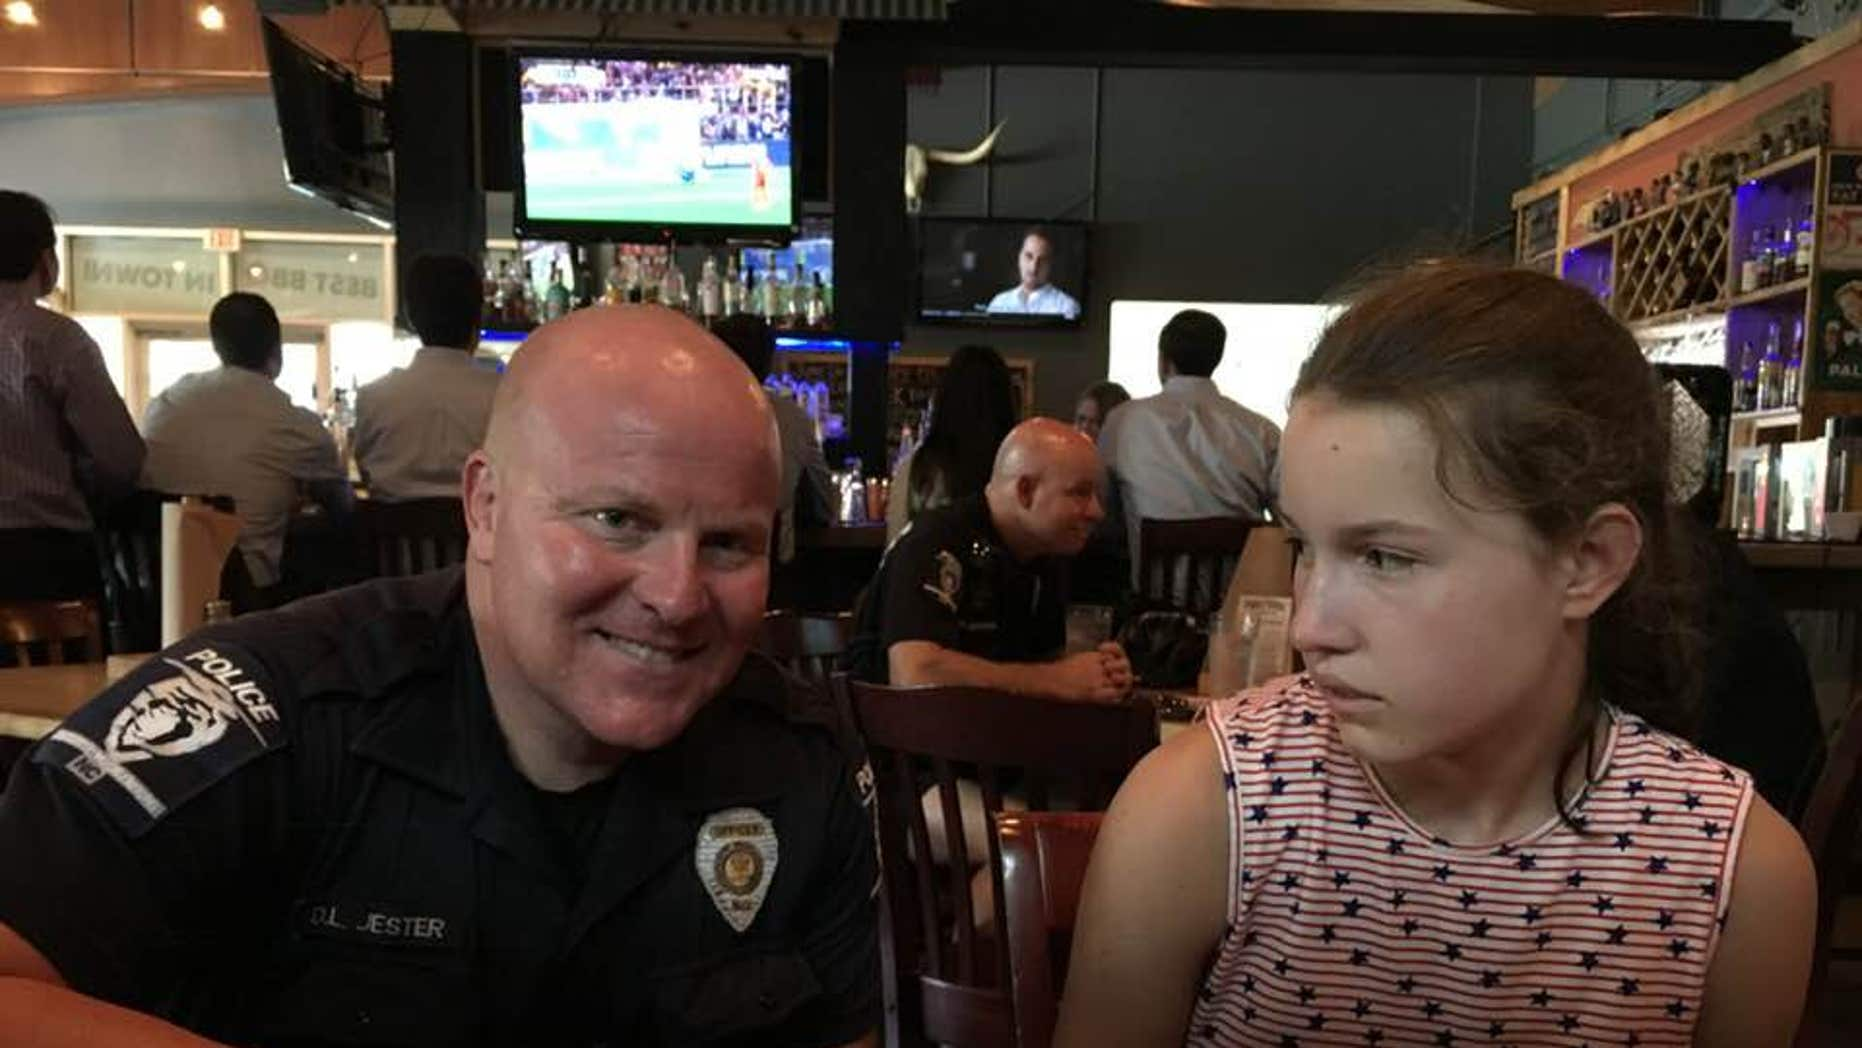 Cindy Frederick is grateful for a Charlotte-Mecklenburg Police officer who took time away from his meal to sit with her family and take a picture with her daughter in an effort to teach her that law enforcement can help her if ever needed.